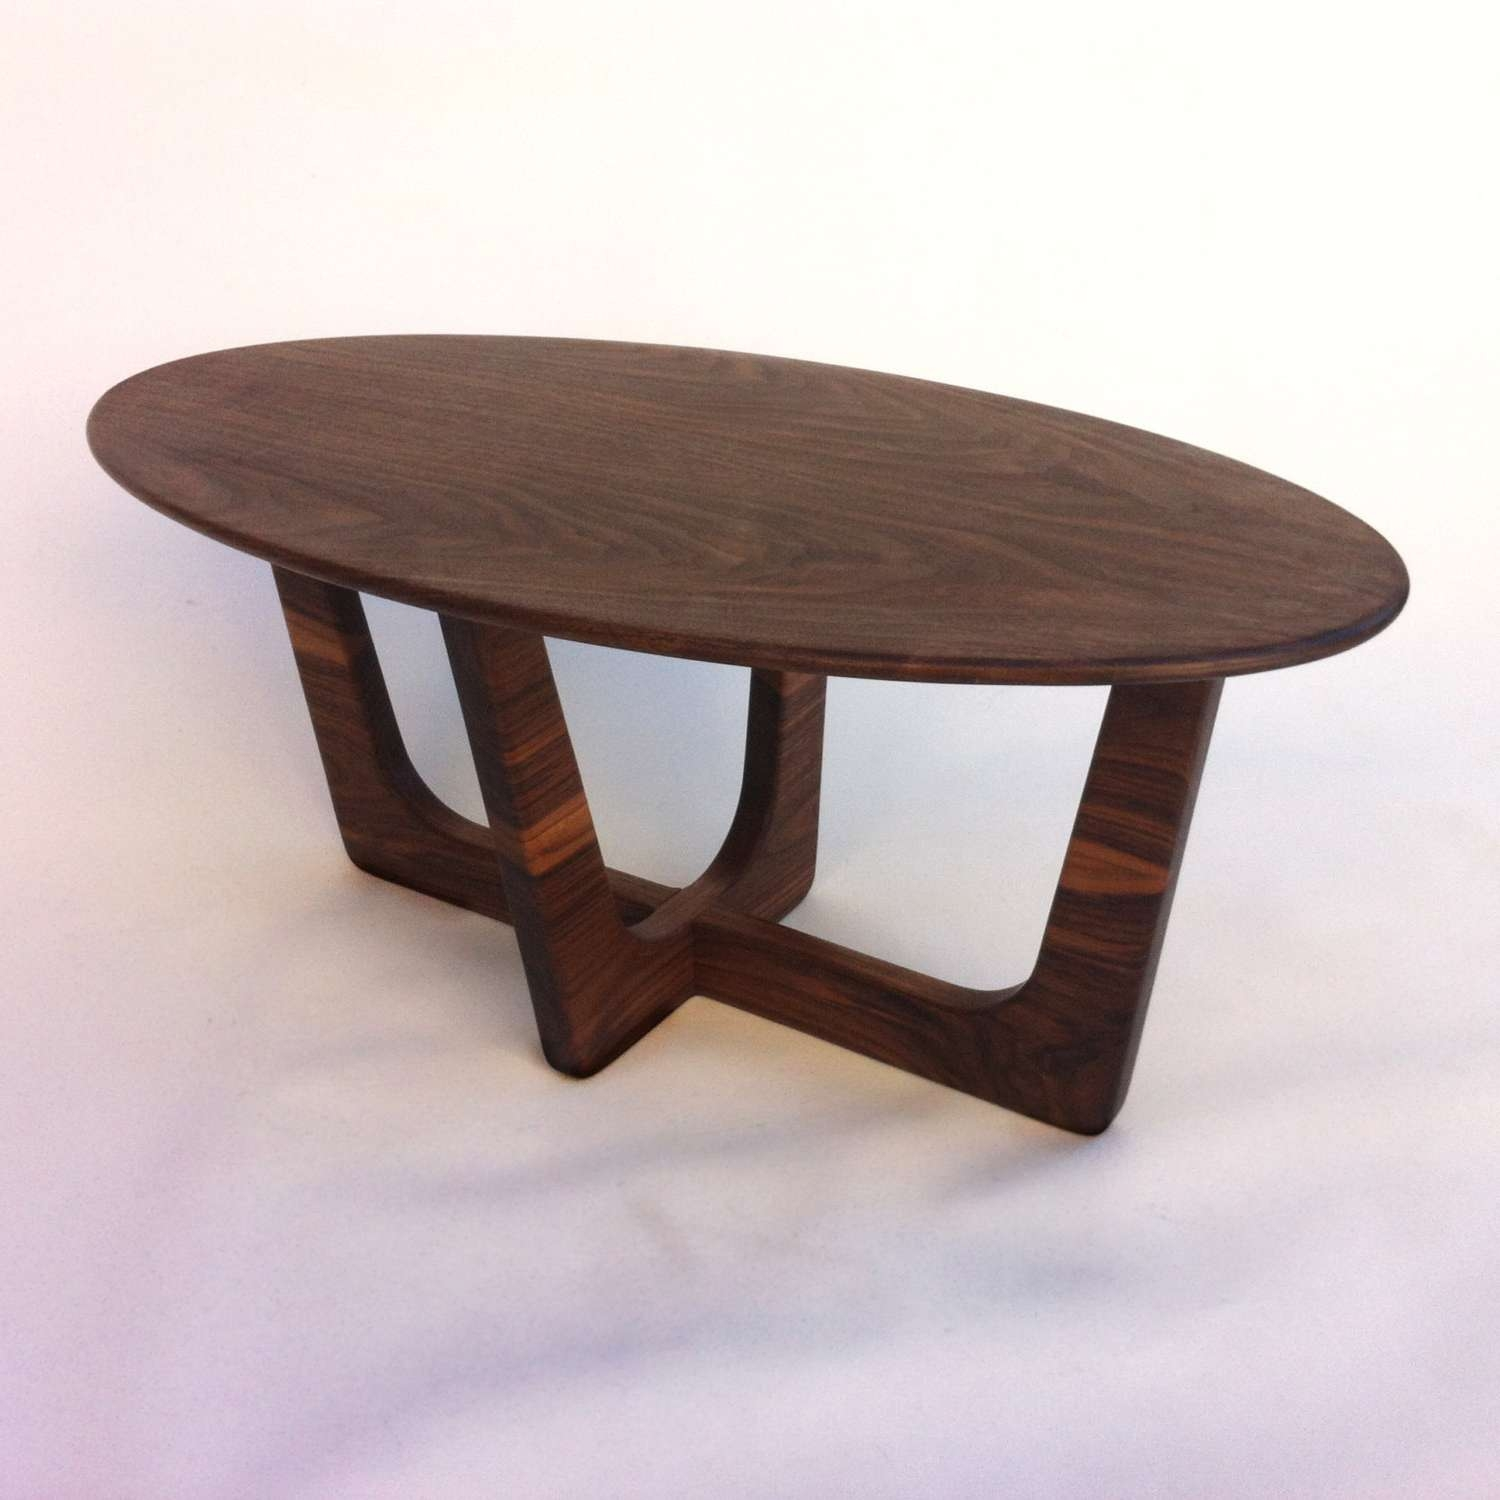 Mid Century Modern Oval Coffee Table Adrian Pearsall Within Widely Used Oval Shaped Coffee Tables (View 4 of 20)